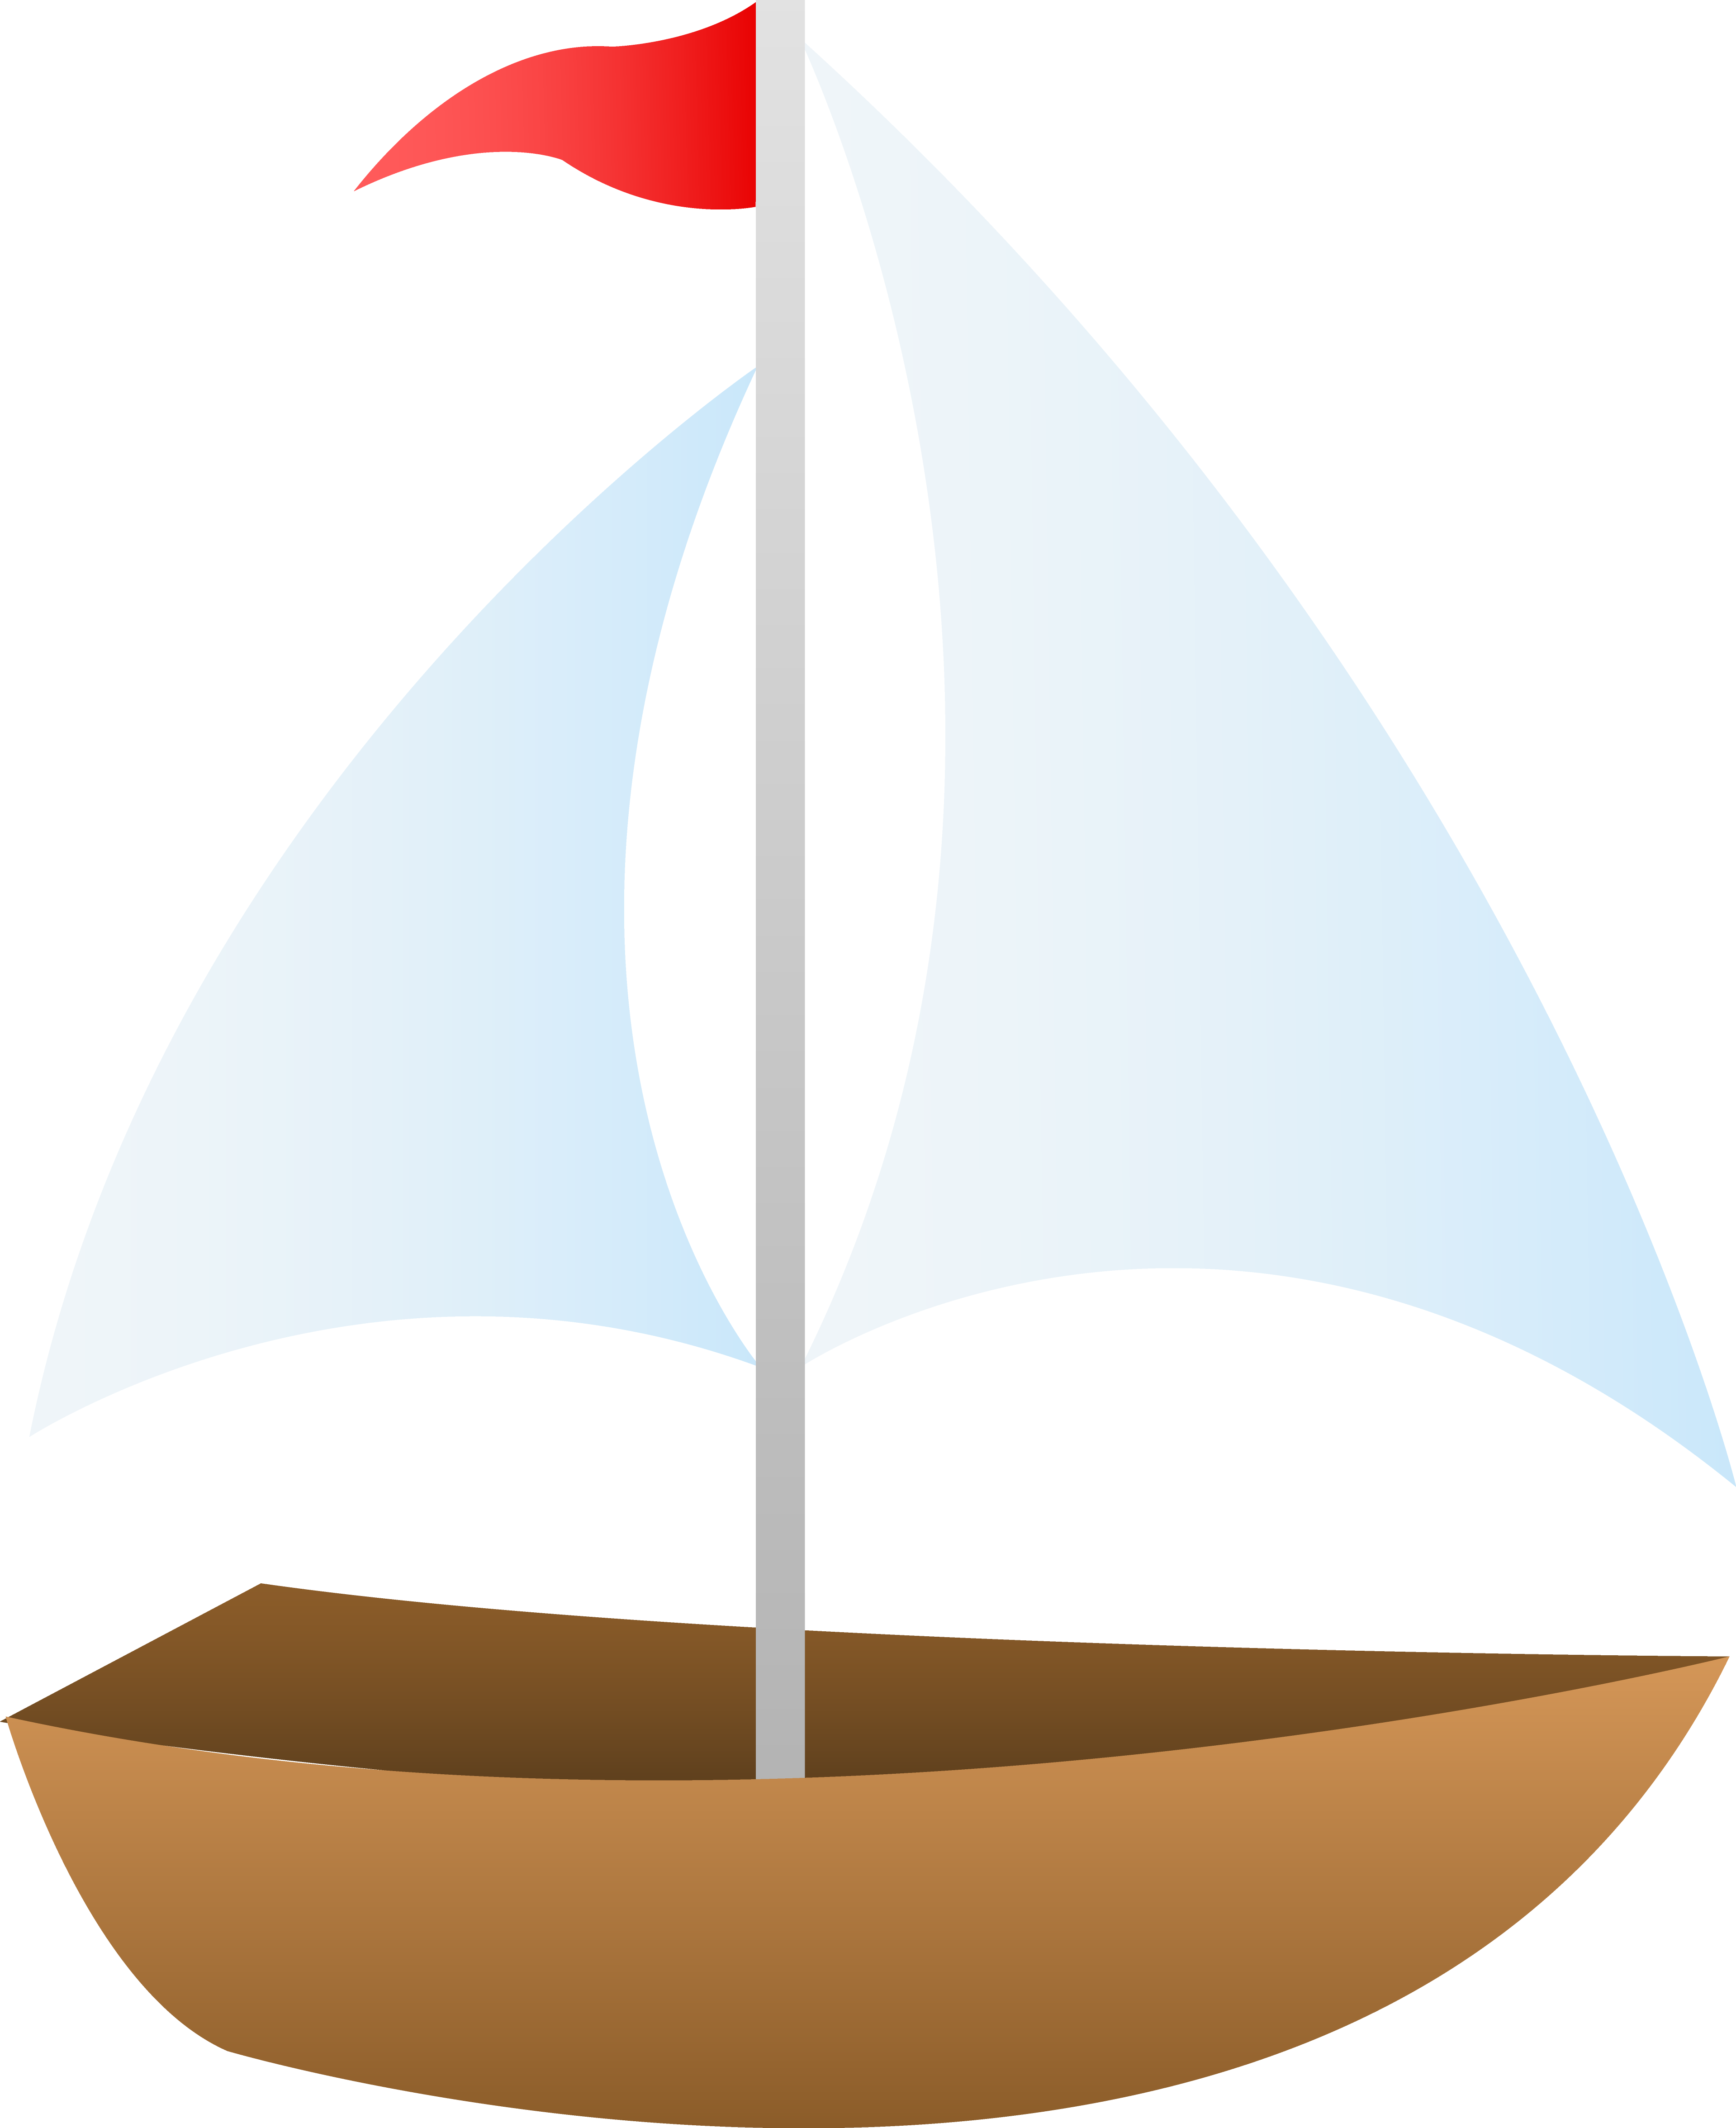 Little Sailboat With Red Flag.